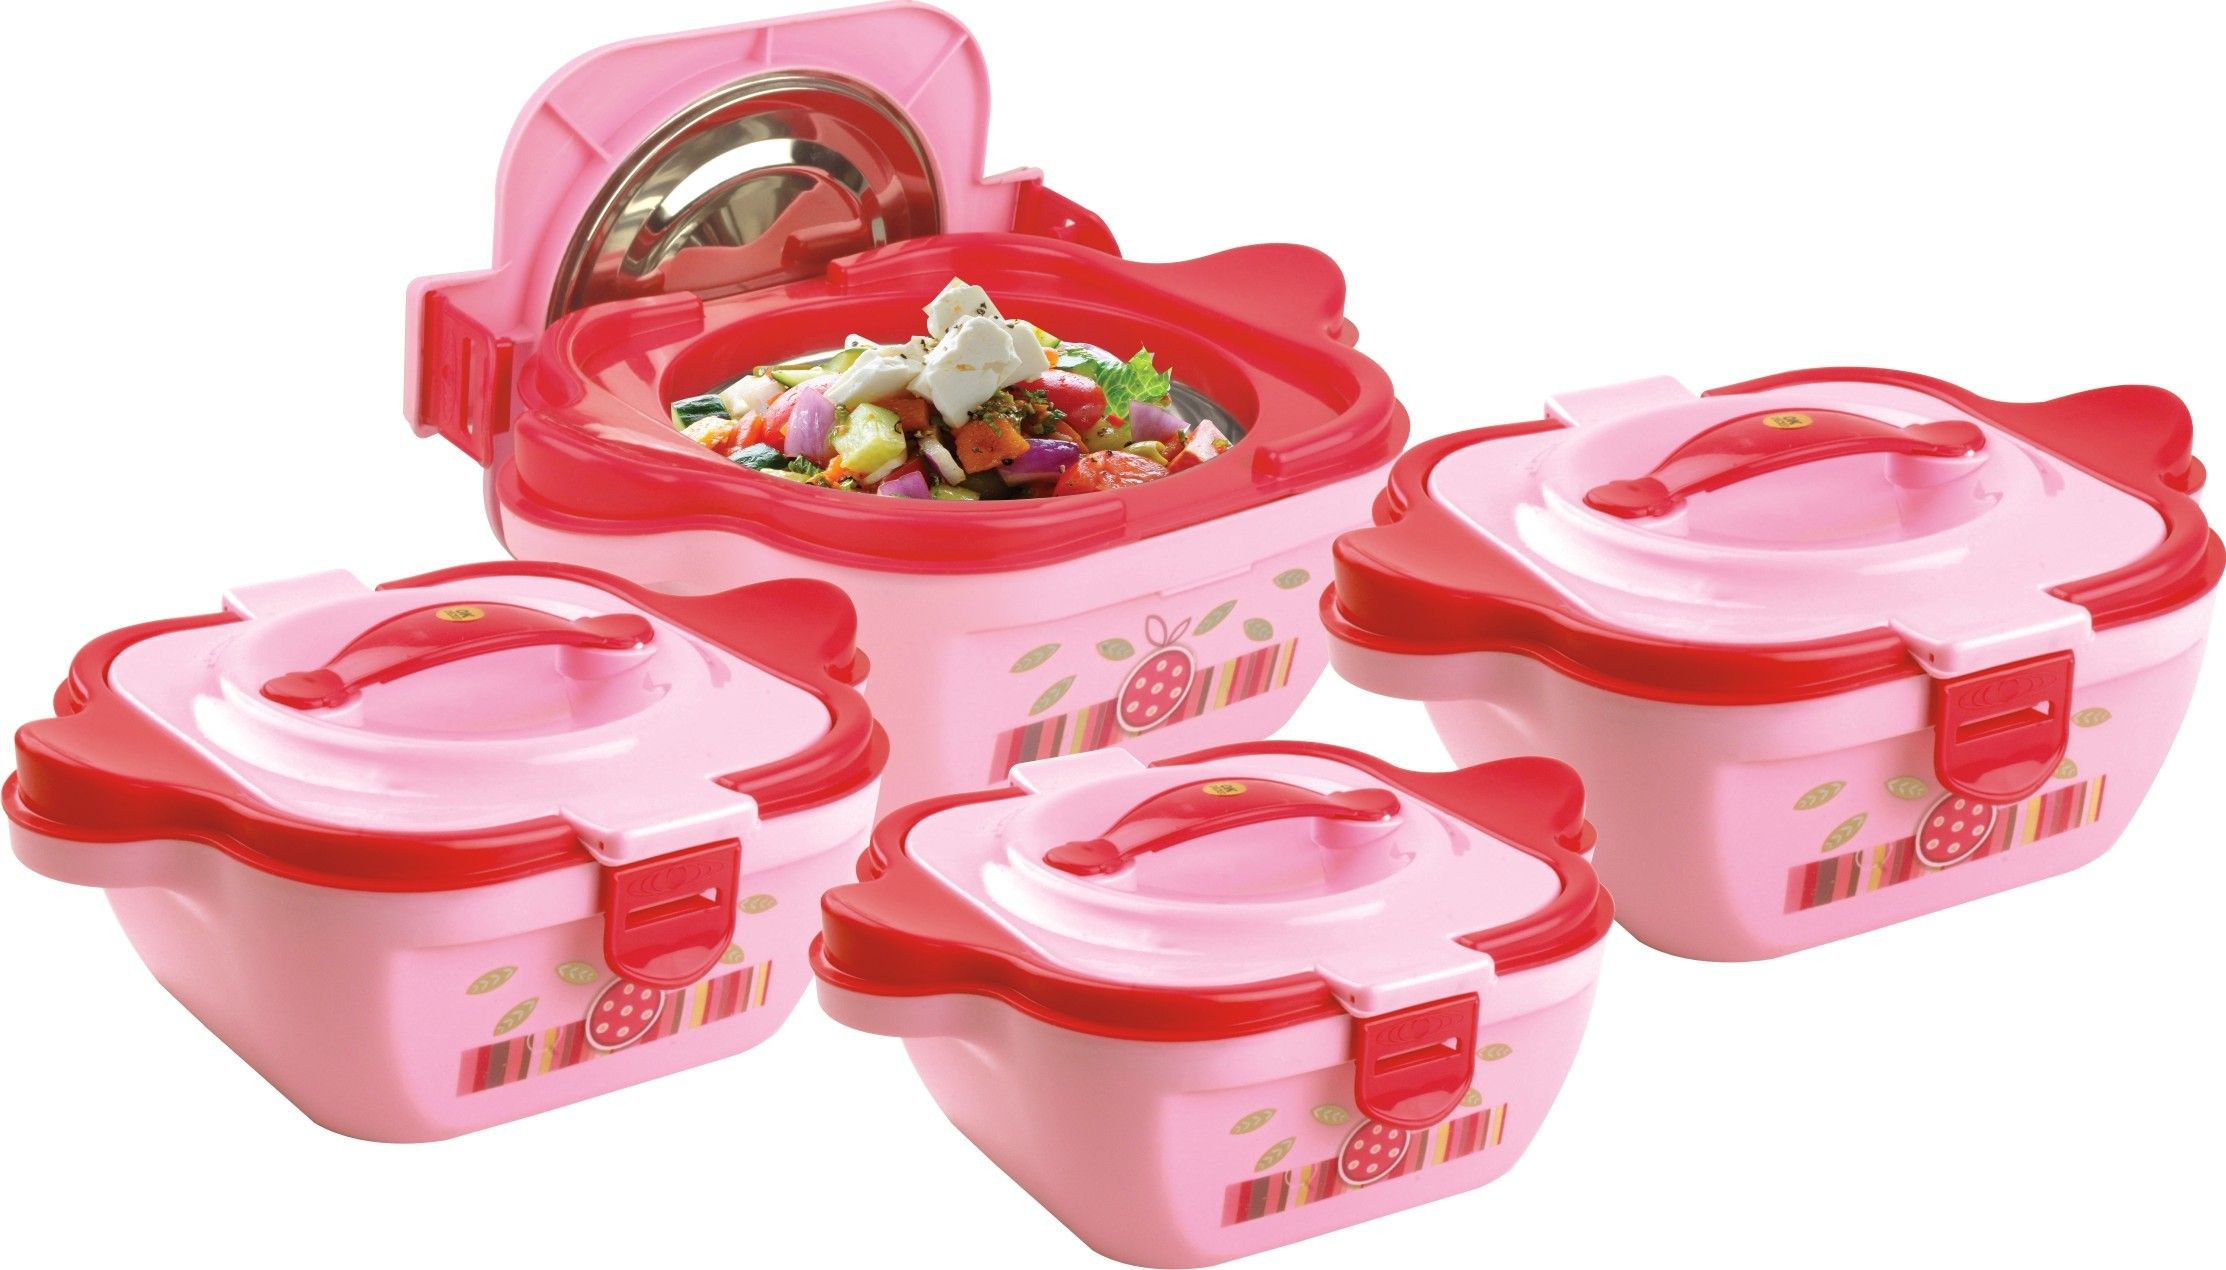 Lock & Fresh 04 Pc Hot Pot Set